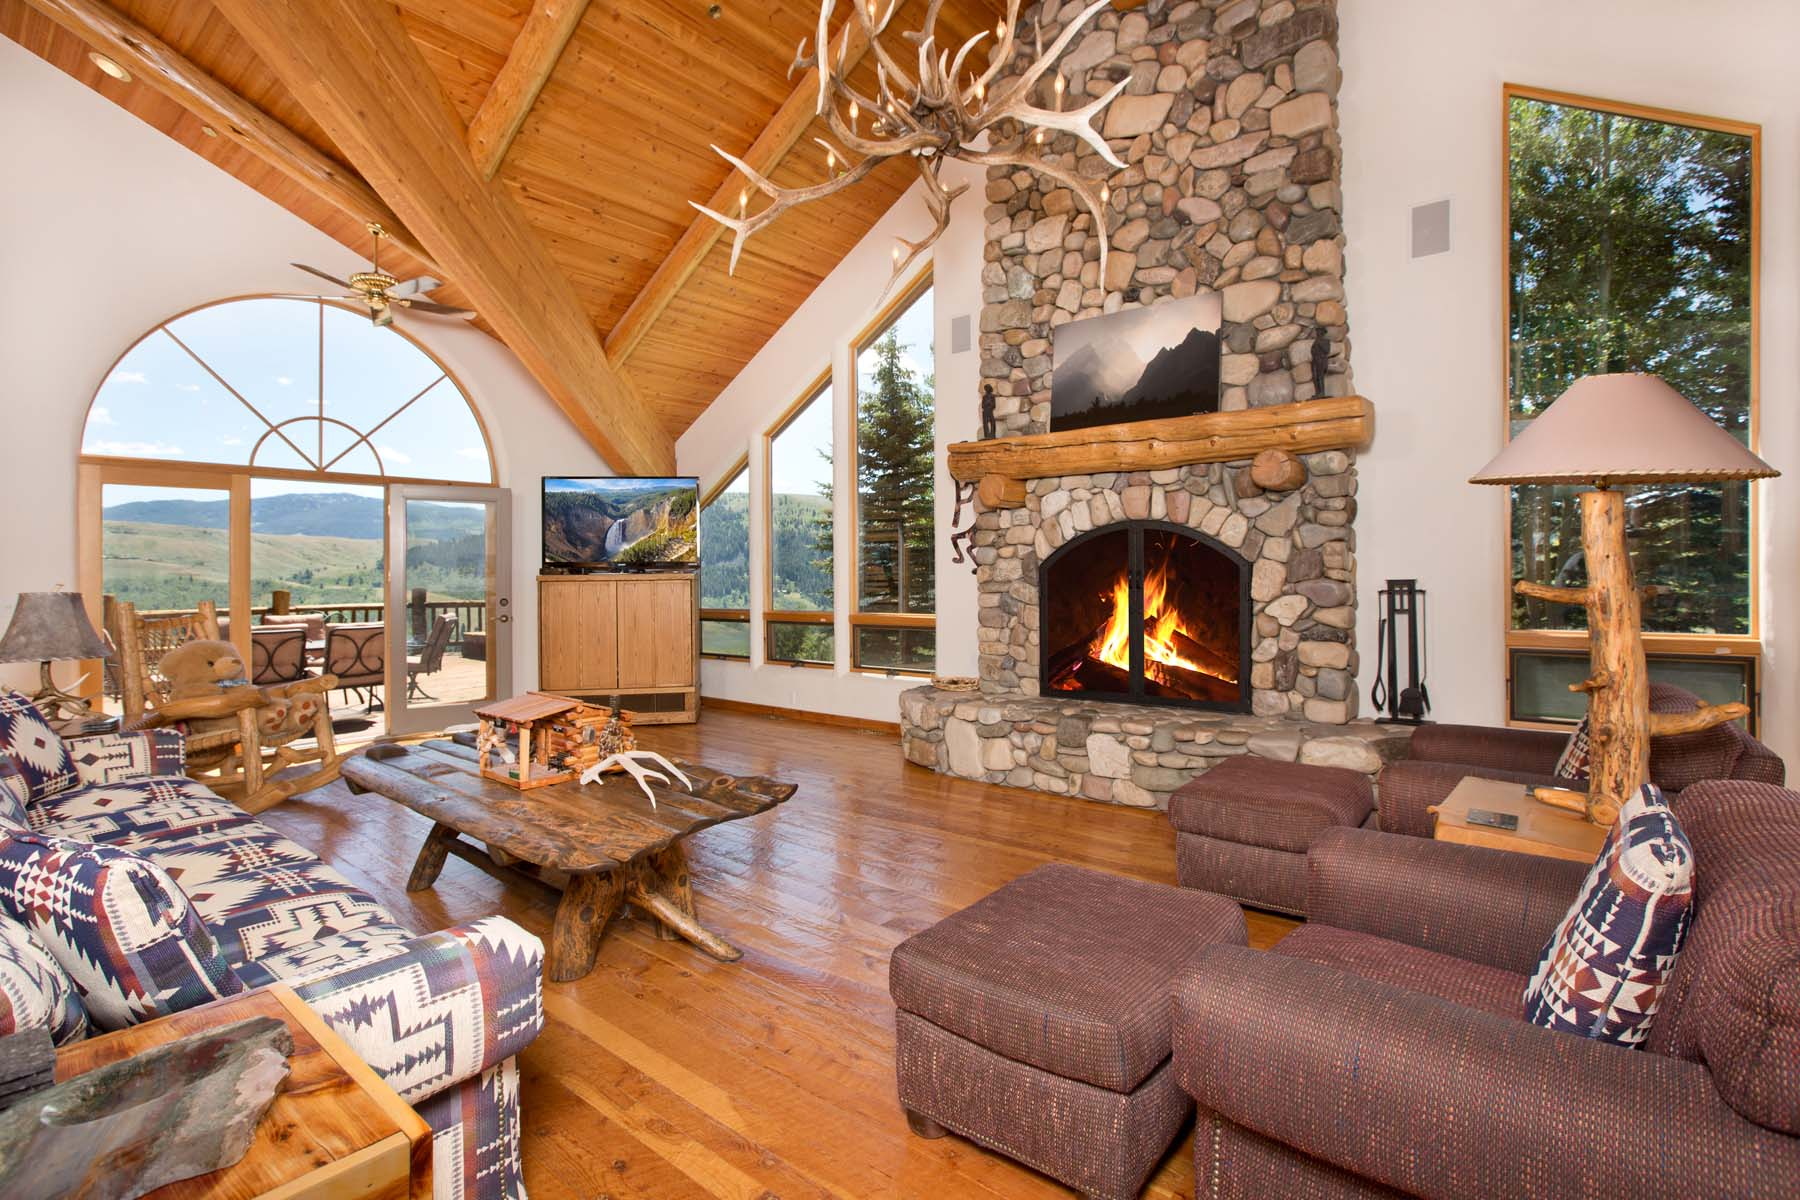 Single Family Home for Sale at Rarely Available Views and Setting 1400 Gannett Road Jackson, Wyoming, 83001 Jackson Hole, United States